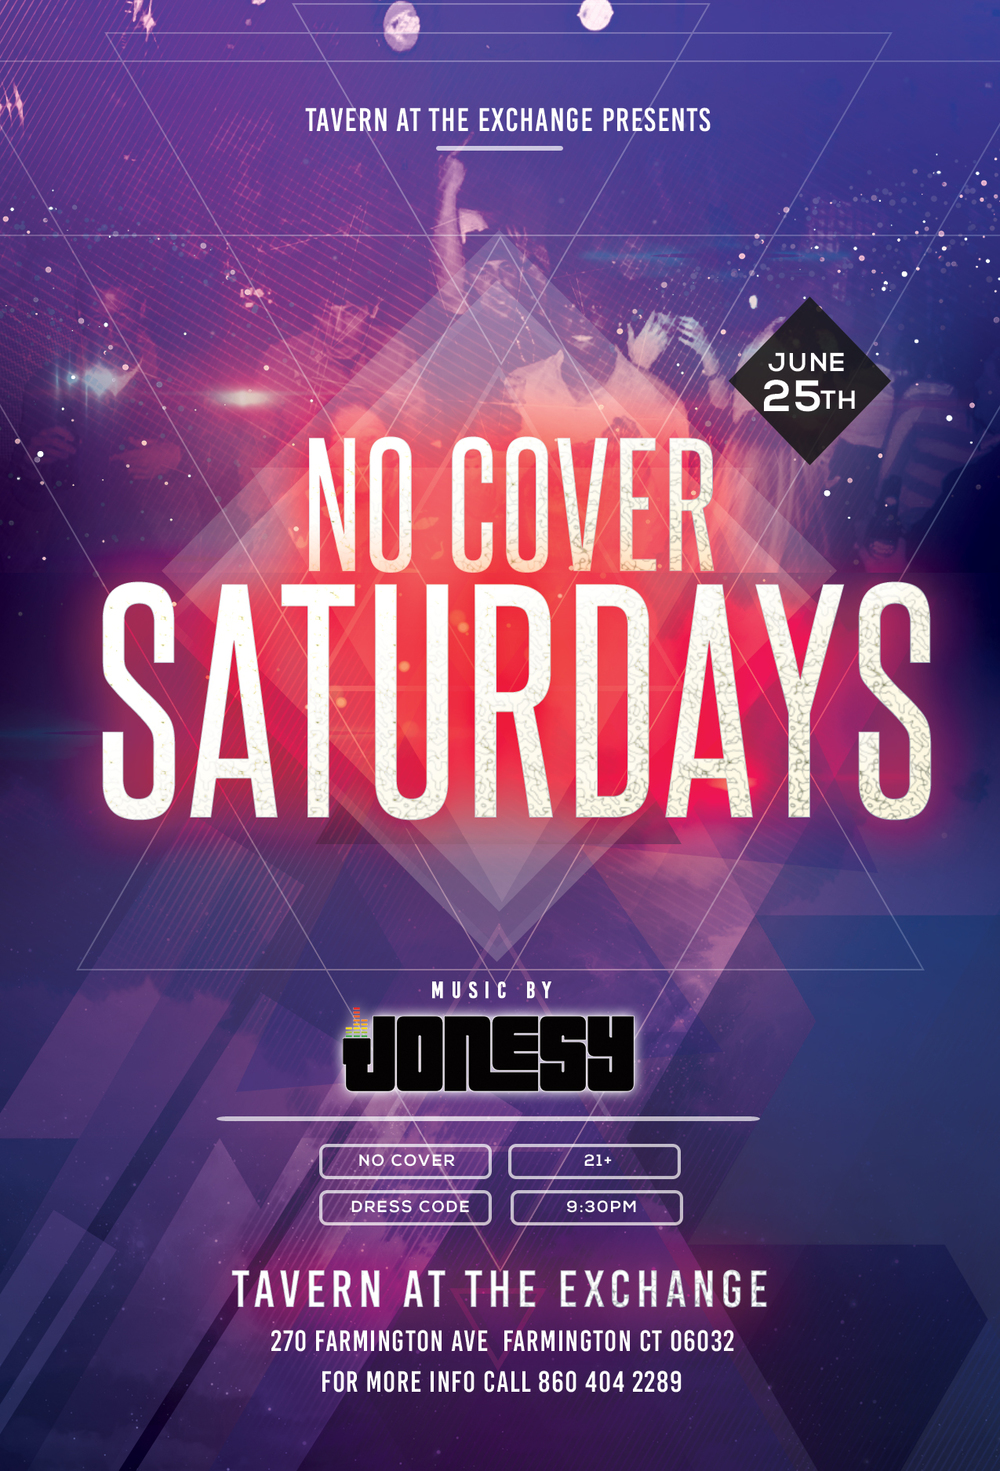 SATURDAY, JUNE 25TH JOIN US AT TAVERN AT THE EXCHANGE IN FARMINGTON, CT FOR 'NO COVER SATURDAYS' WITH MUSIC BY YOURS TRULY 9:30PM - CLOSE!  DRESS TO IMPRESS.  NO COVER.  21+.  SEE YOU ALL THERE!